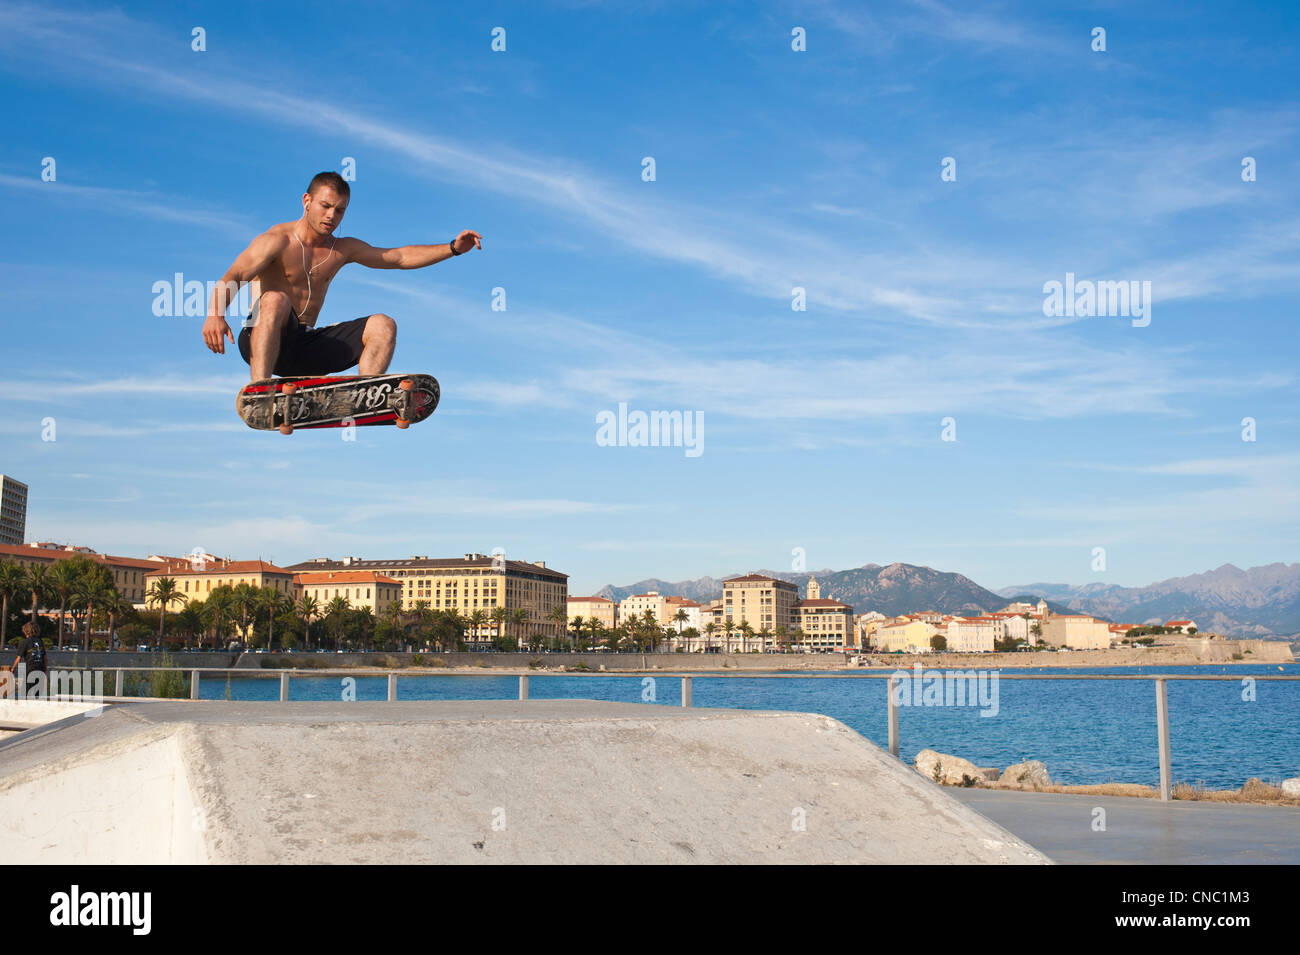 France, Corse du Sud, Ajaccio, the skatepark on the seafront - Stock Image